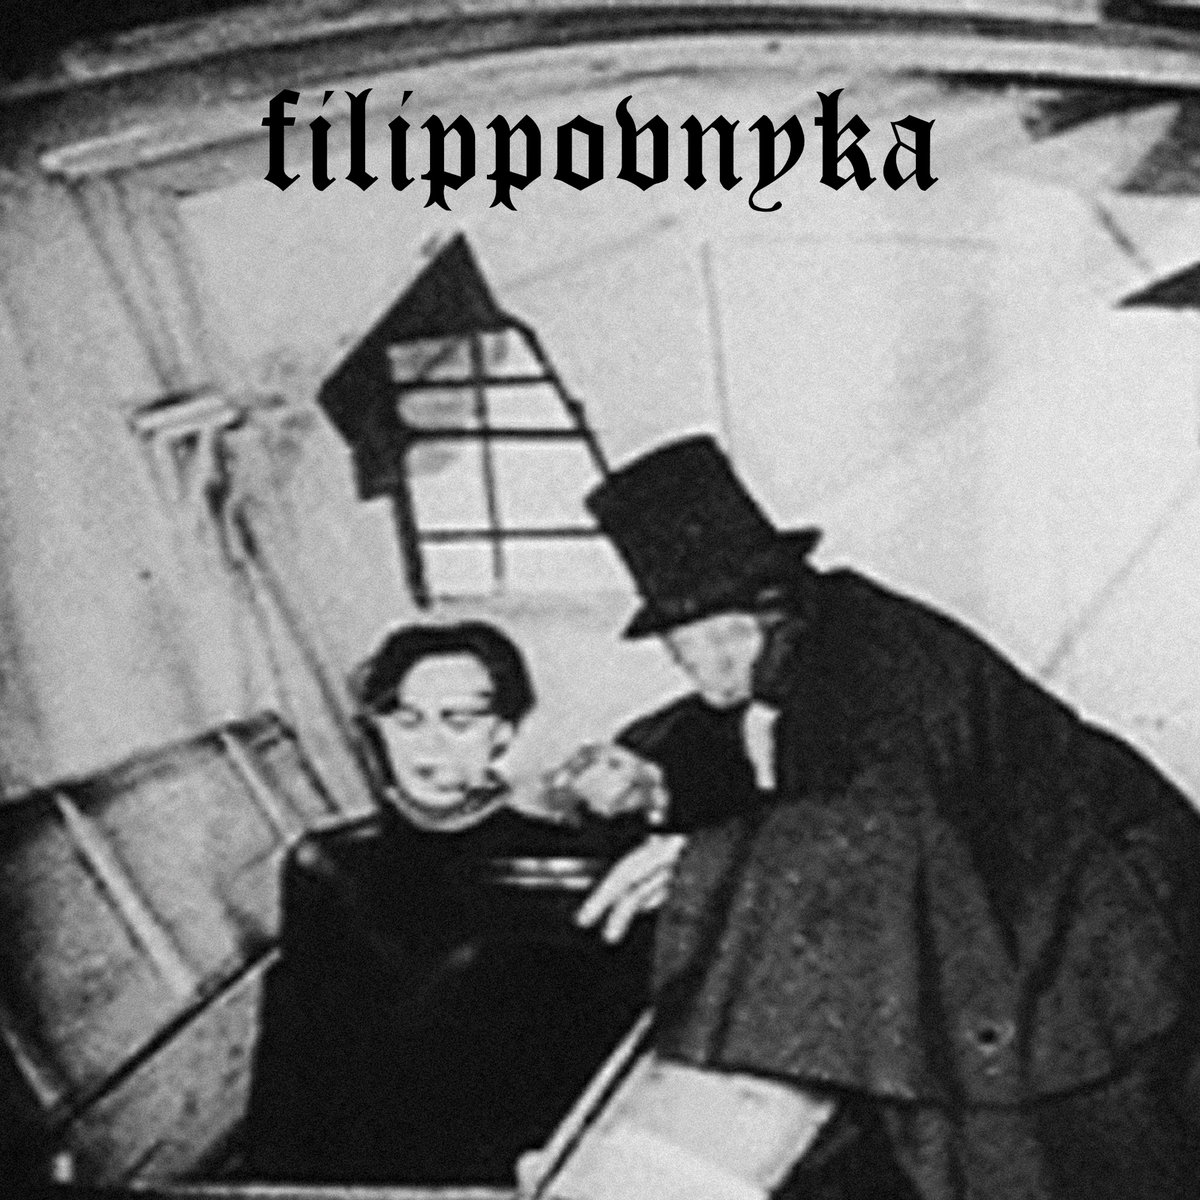 Filippovnyka cover